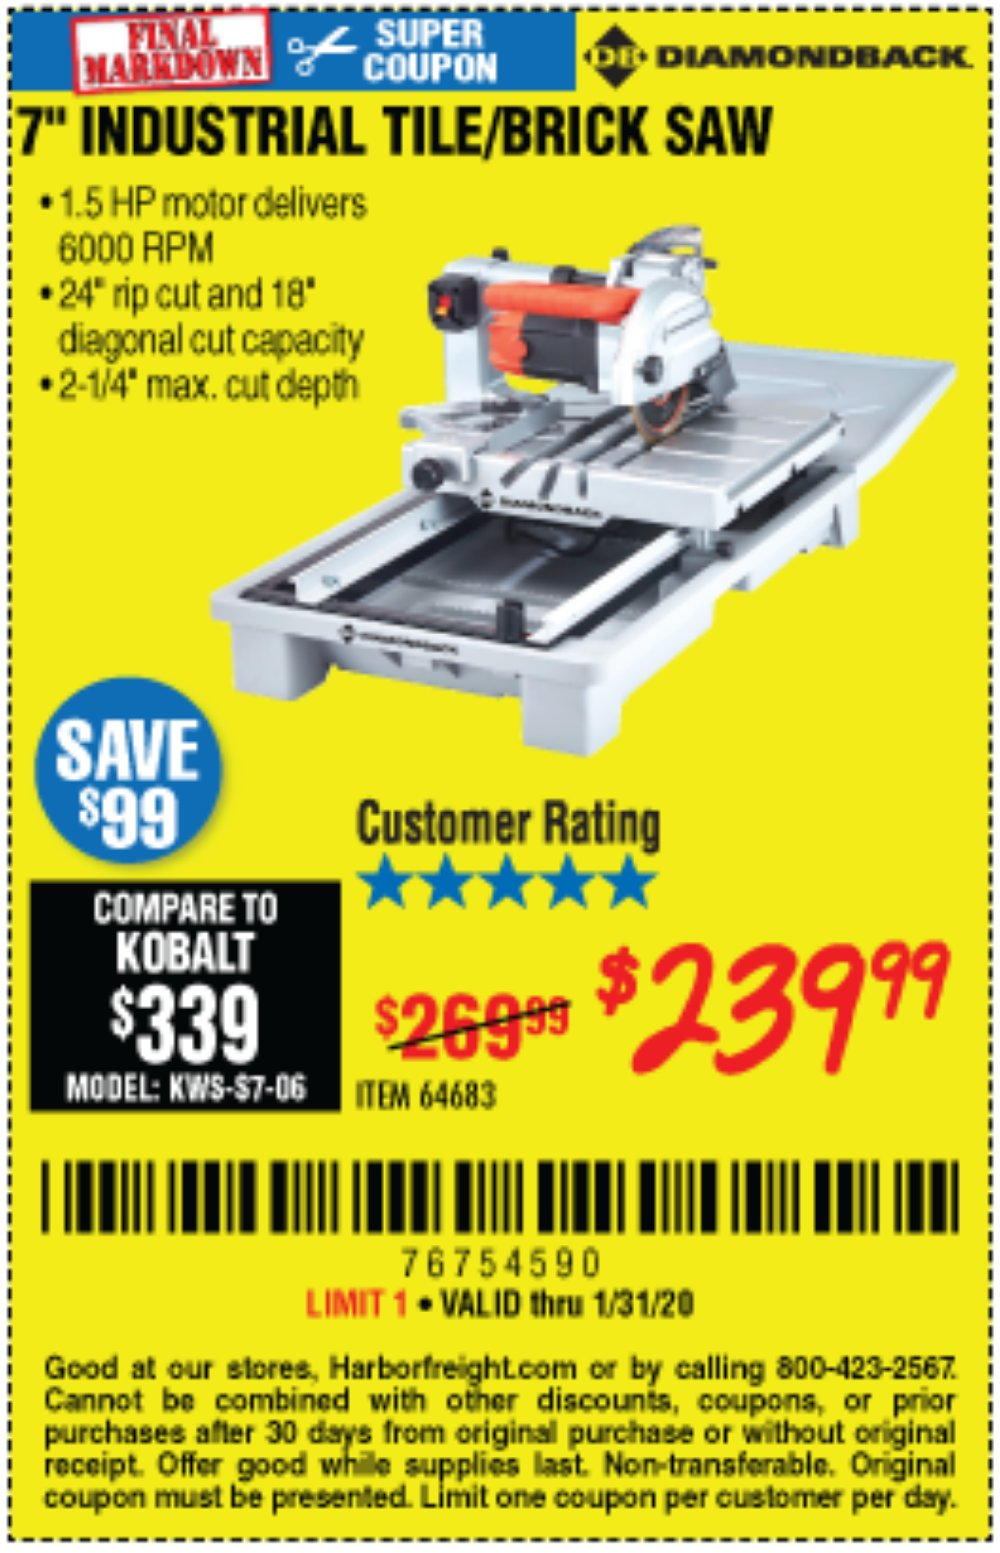 Harbor Freight Coupon, HF Coupons - 1.5 Hp, 7